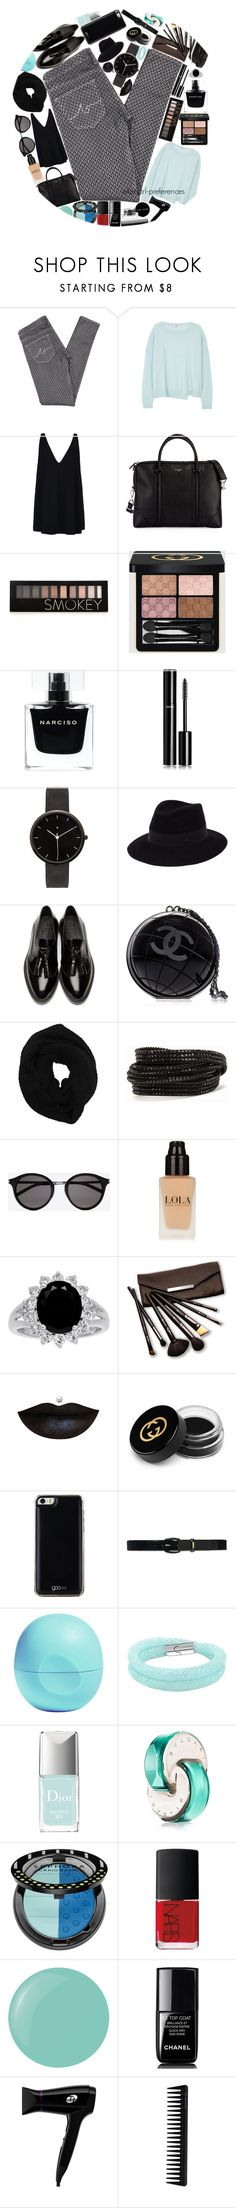 """Black n' blue"" by fangirl-preferences ❤ liked on Polyvore featuring AG Adriano Goldschmied, J Brand, STELLA McCARTNEY, Givenchy, Forever 21, Gucci, Narciso Rodriguez, Chanel, I Love Ugly and Maison Michel"